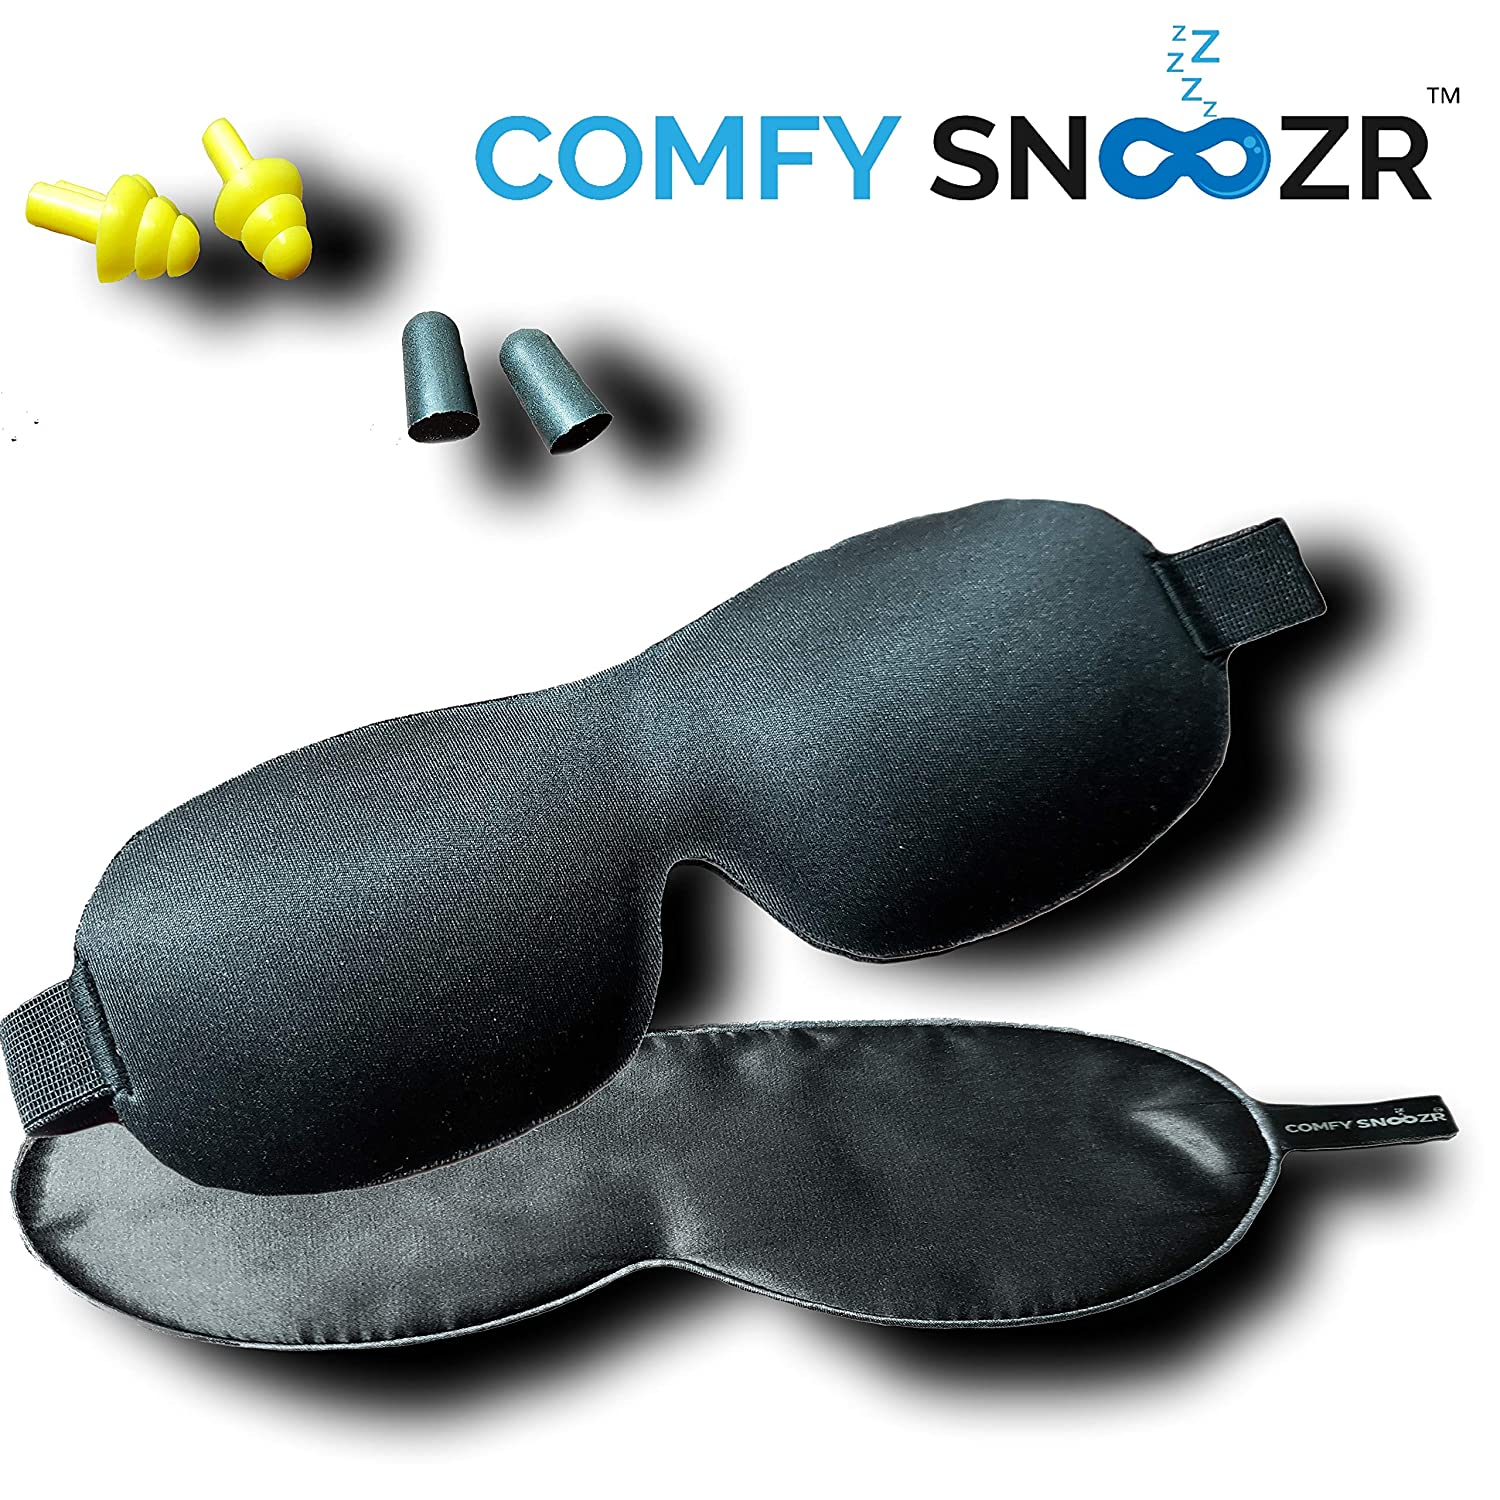 Amazing Black Sleeping Mask Set by Comfy Snoozr | 4-in-1 Set | Super Soft, Comfortable & Adjustable |...